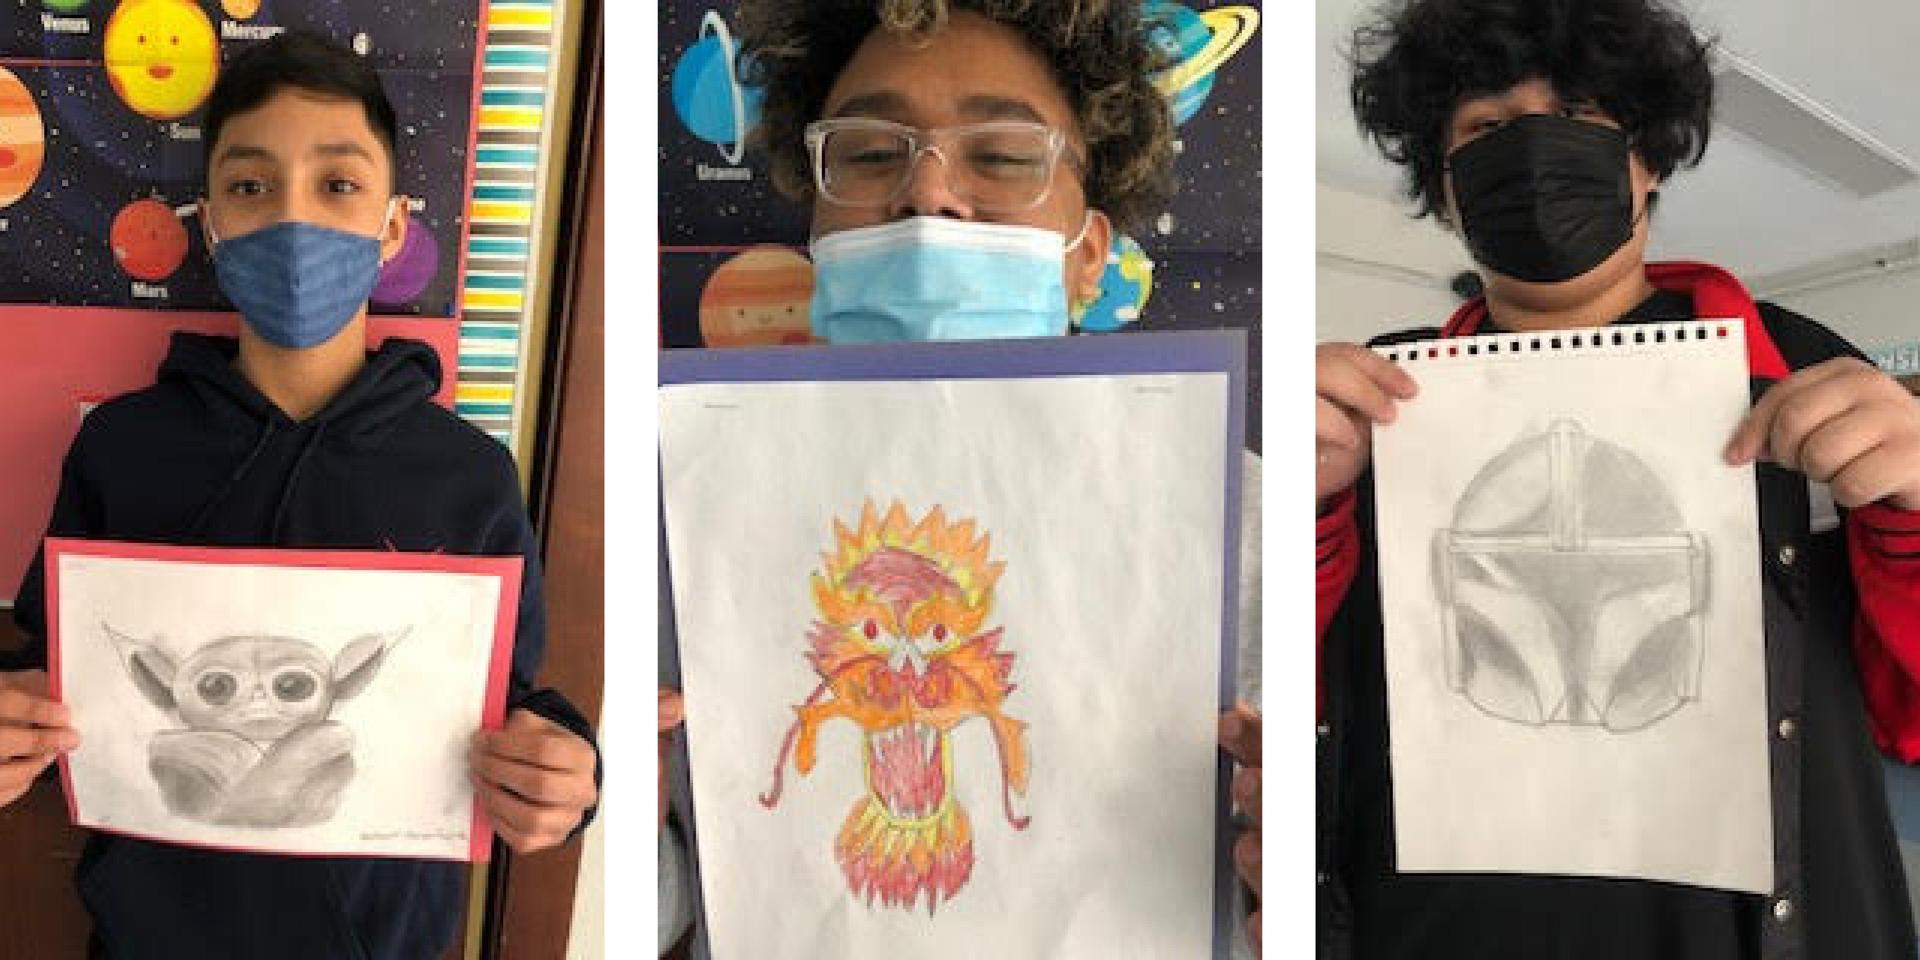 Three tile image, students holding up art projects